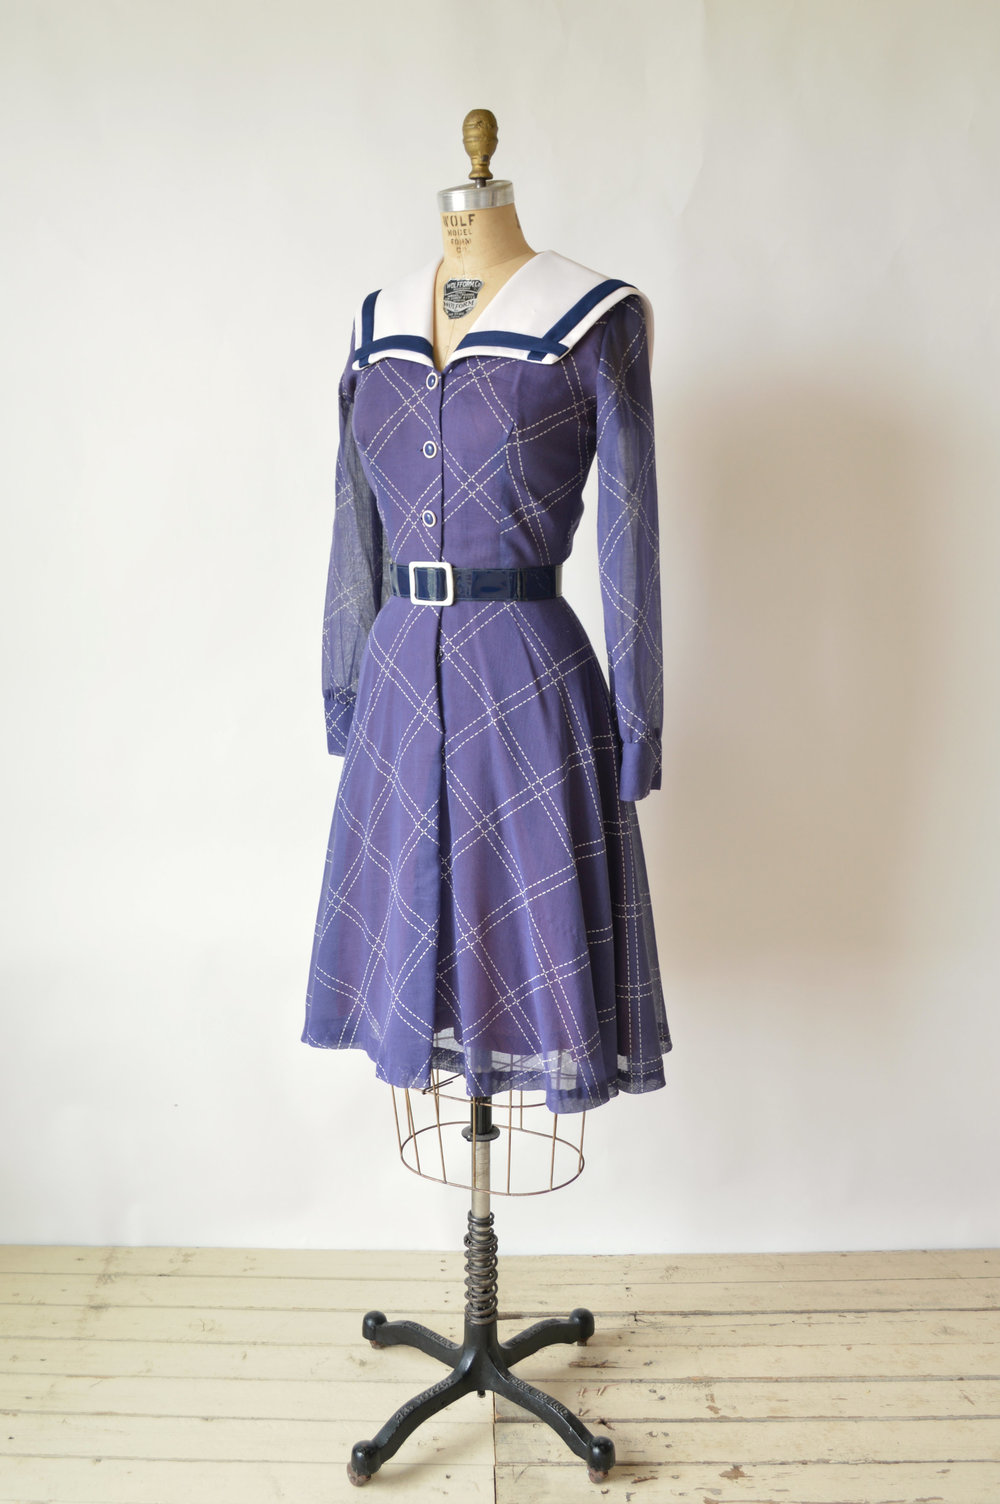 1960s Vintage Sailor Inspired Dress from Dalena Vintage